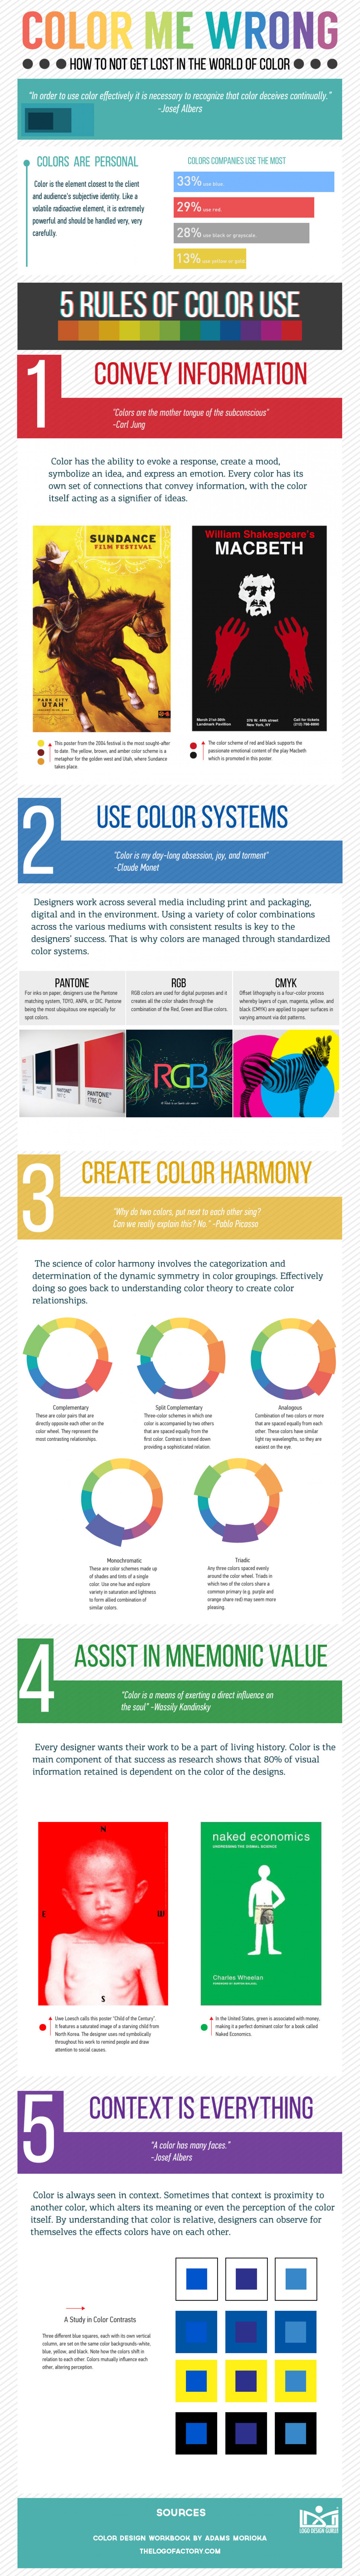 Color Me Wrong Infographic